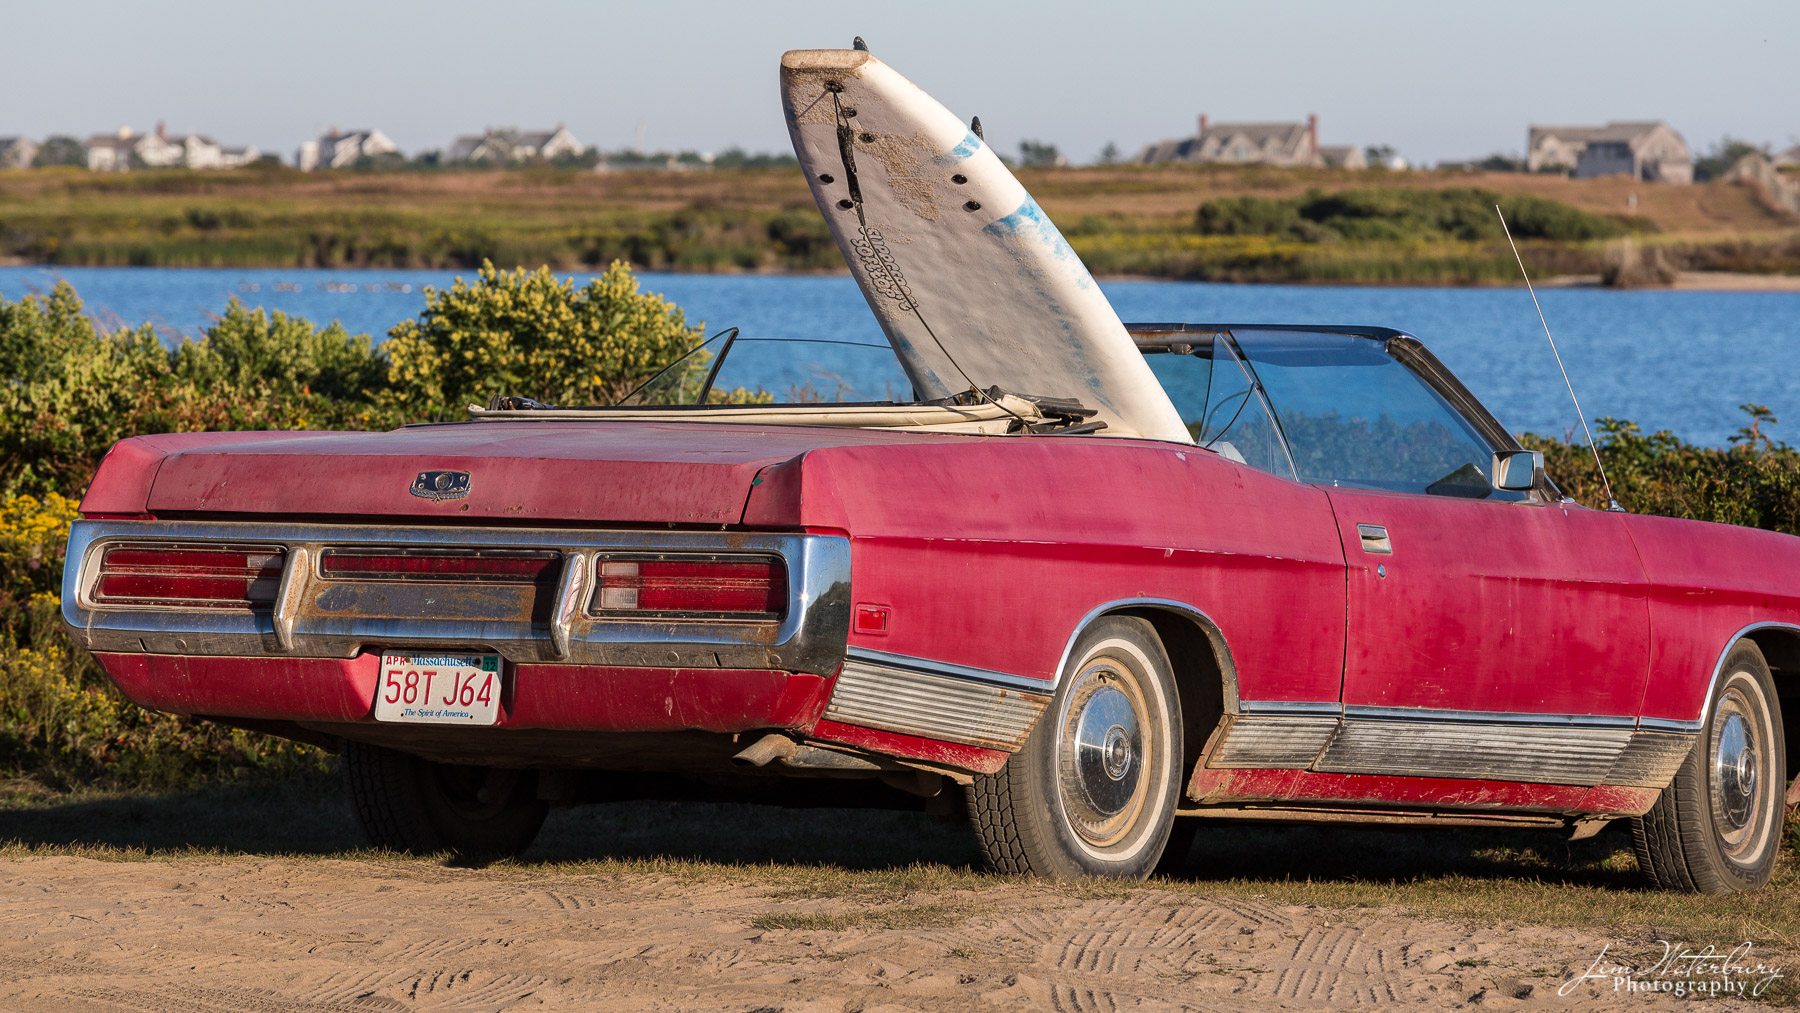 red, convertible, surf board, Miacomet, Nantucket, beach, photo